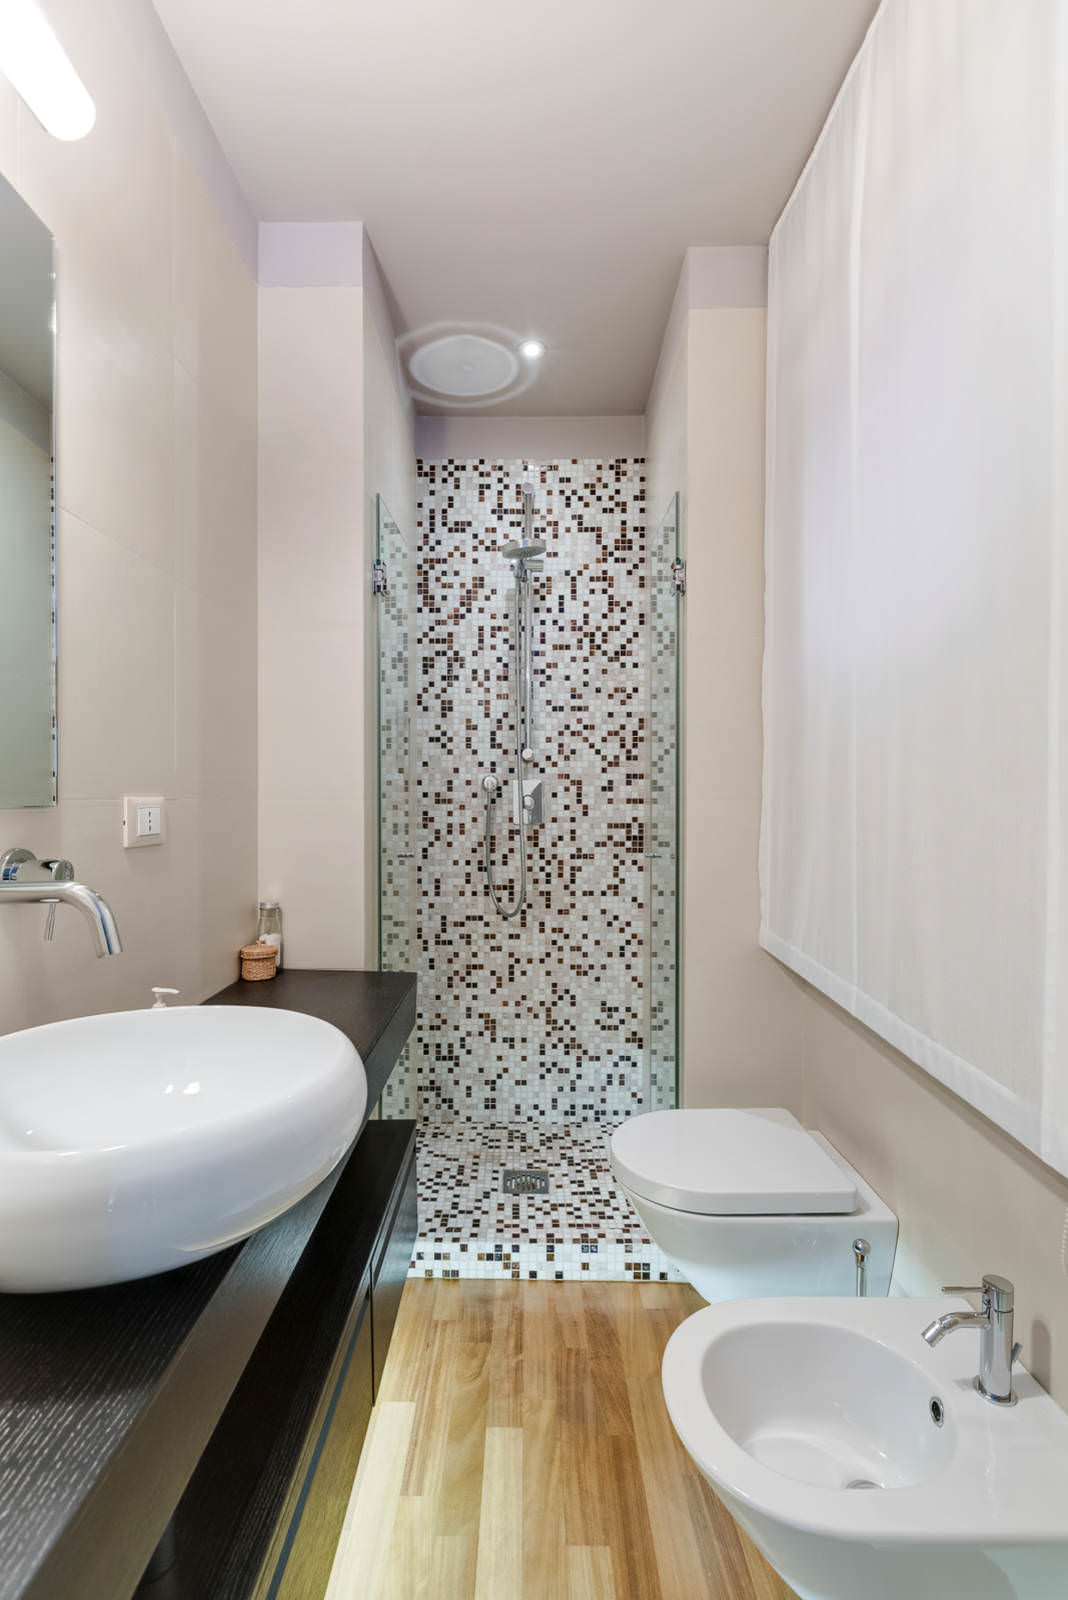 http://www.startpreventivi.it/wordpress/wp-content/themes/Avada-Child-Theme/images/Blog/Bagno/Mosaico/mosaico-bagno-64.jpg